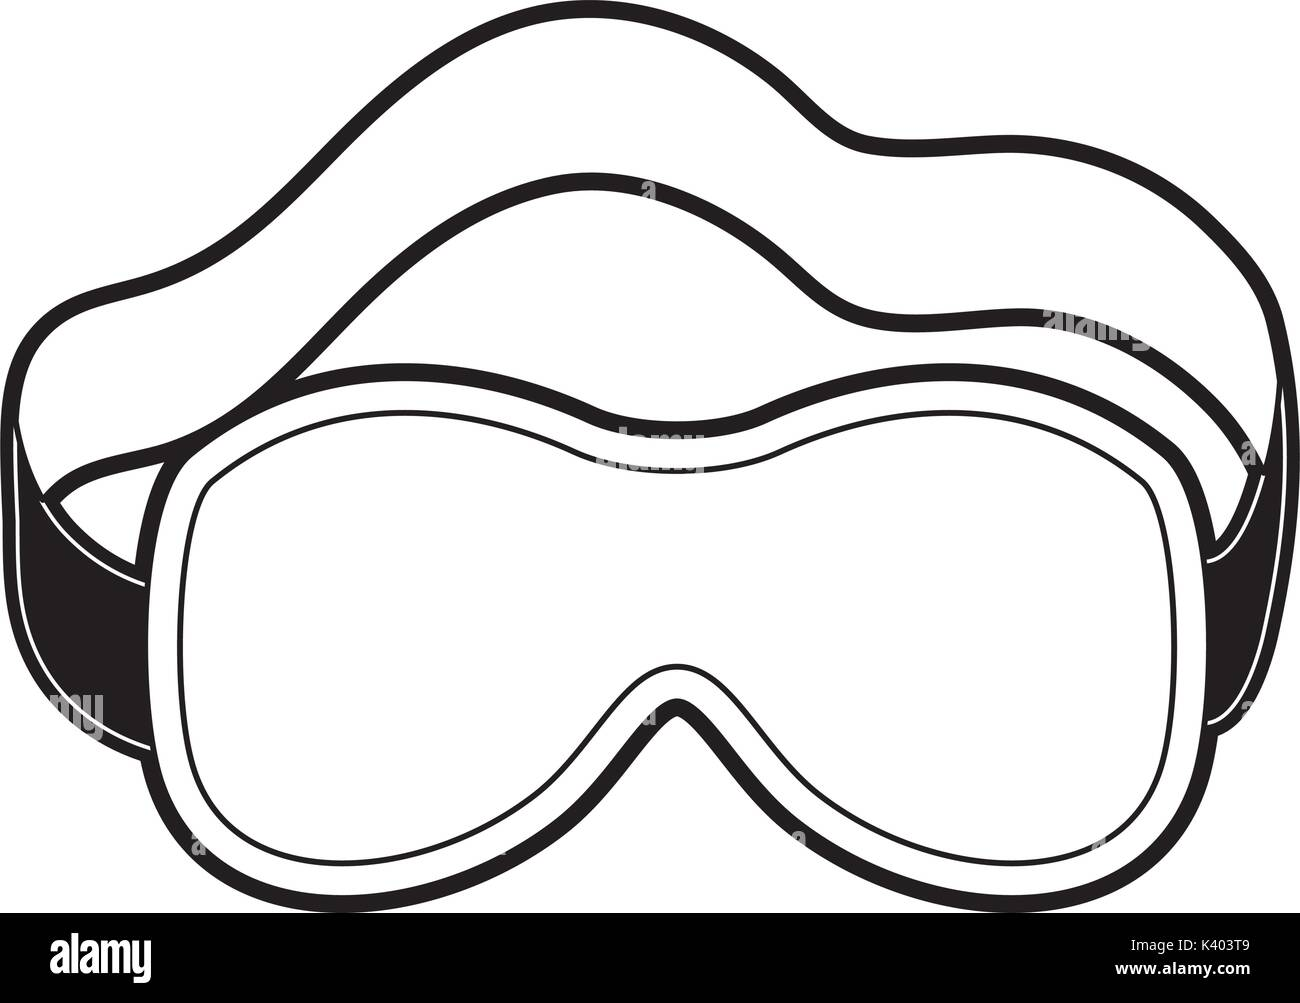 ef3b9ae3368 sleep mask black color section silhouette on white background - Stock Vector